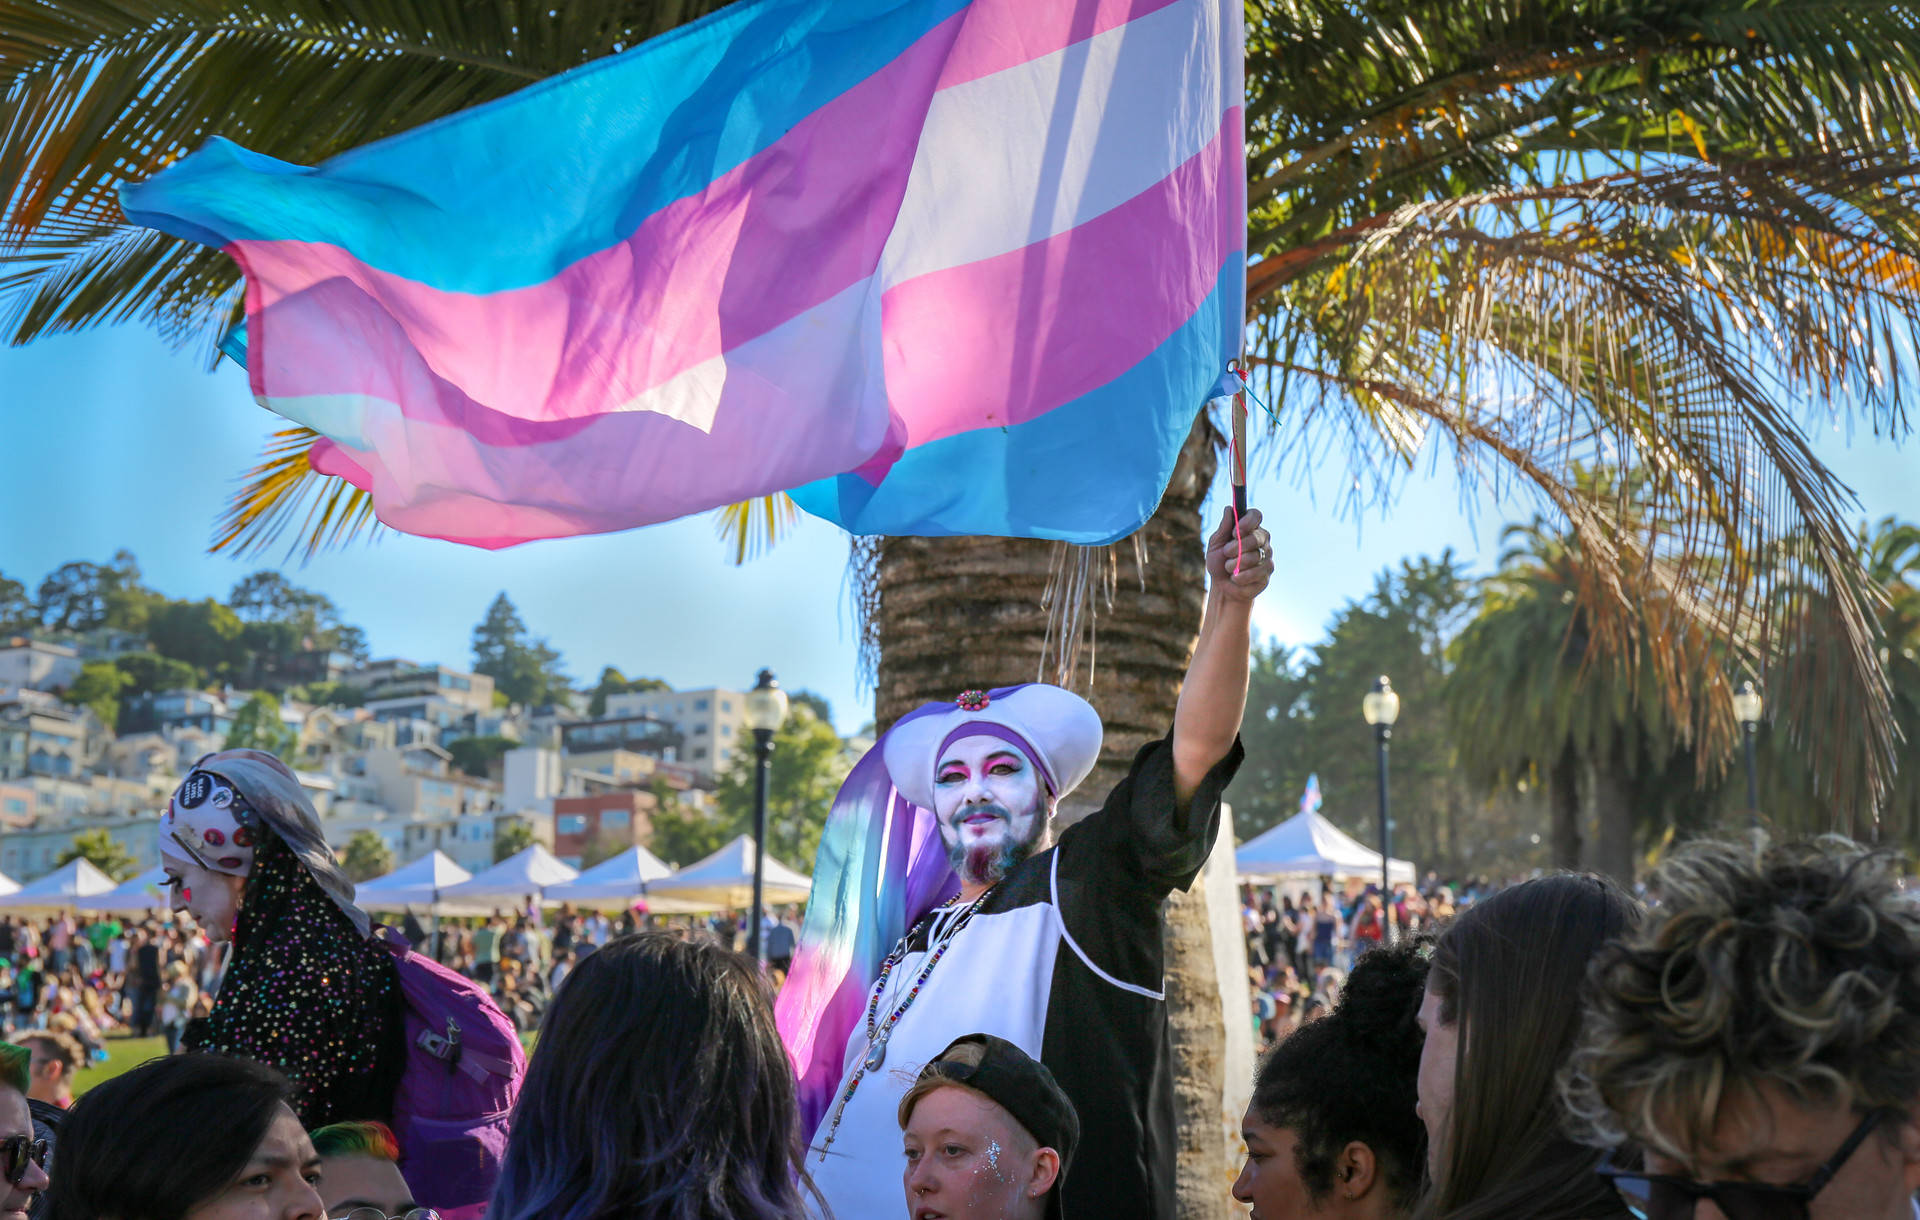 The transgender pride flag is held high during the Trans March at Dolores Park on June 28, 2019. Sruti Mamidanna/KQED